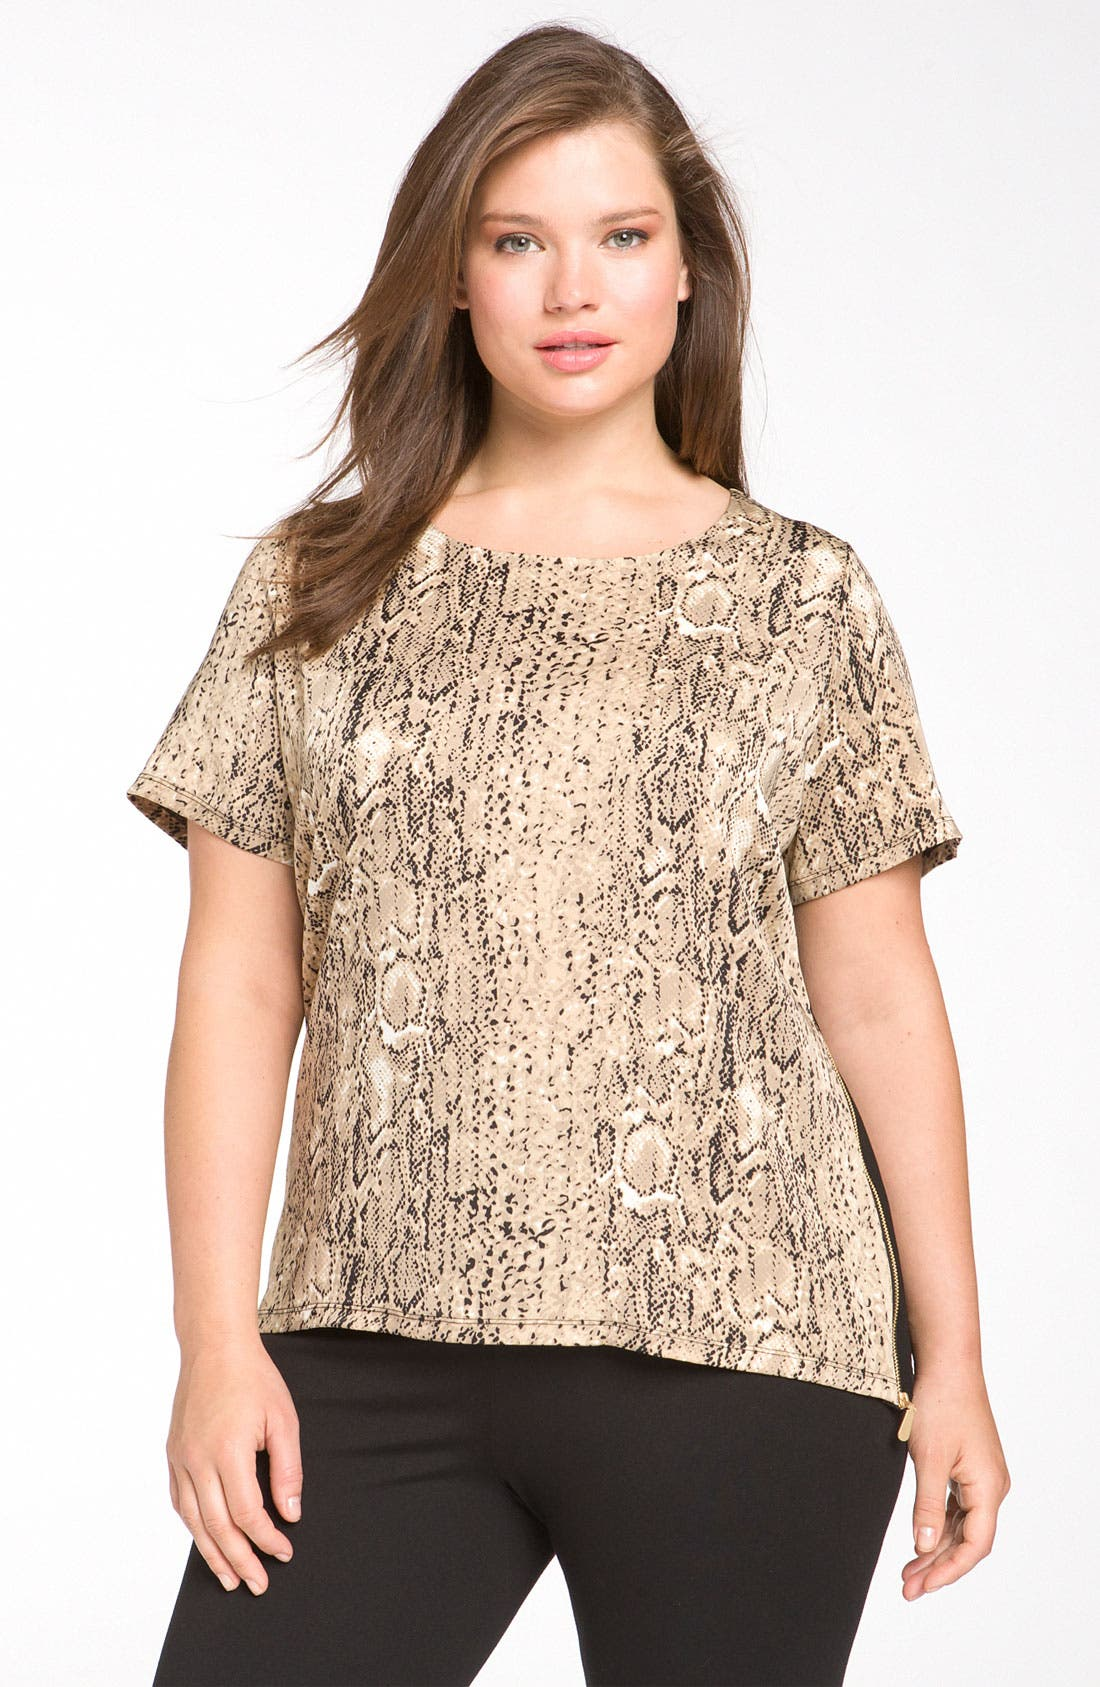 Alternate Image 1 Selected - Vince Camuto 'Safari Skin' Tee (Plus)